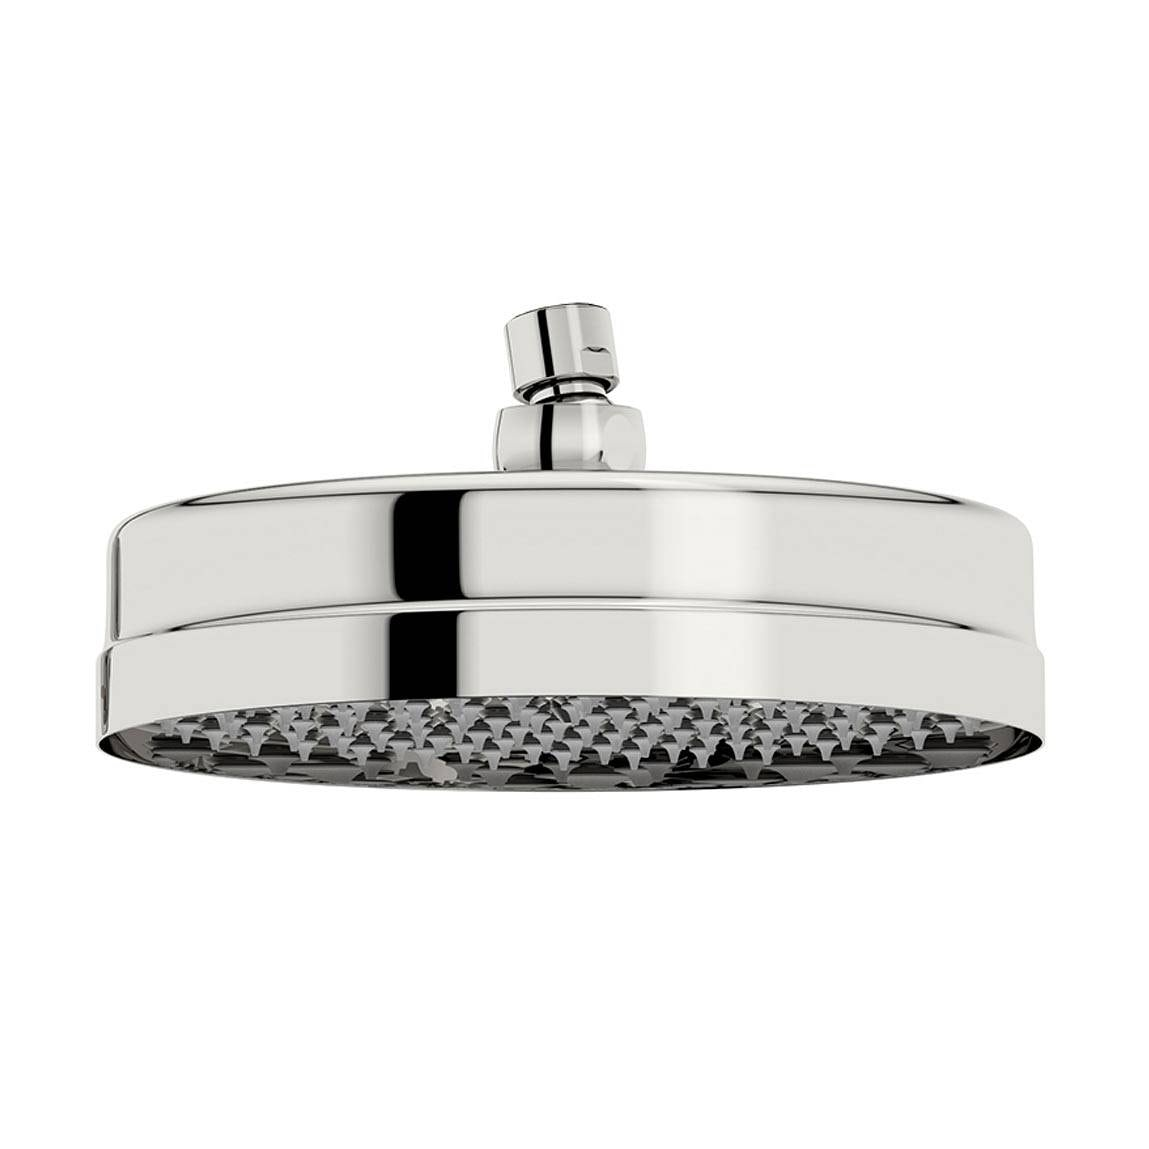 The Bath Co. Camberley shower head